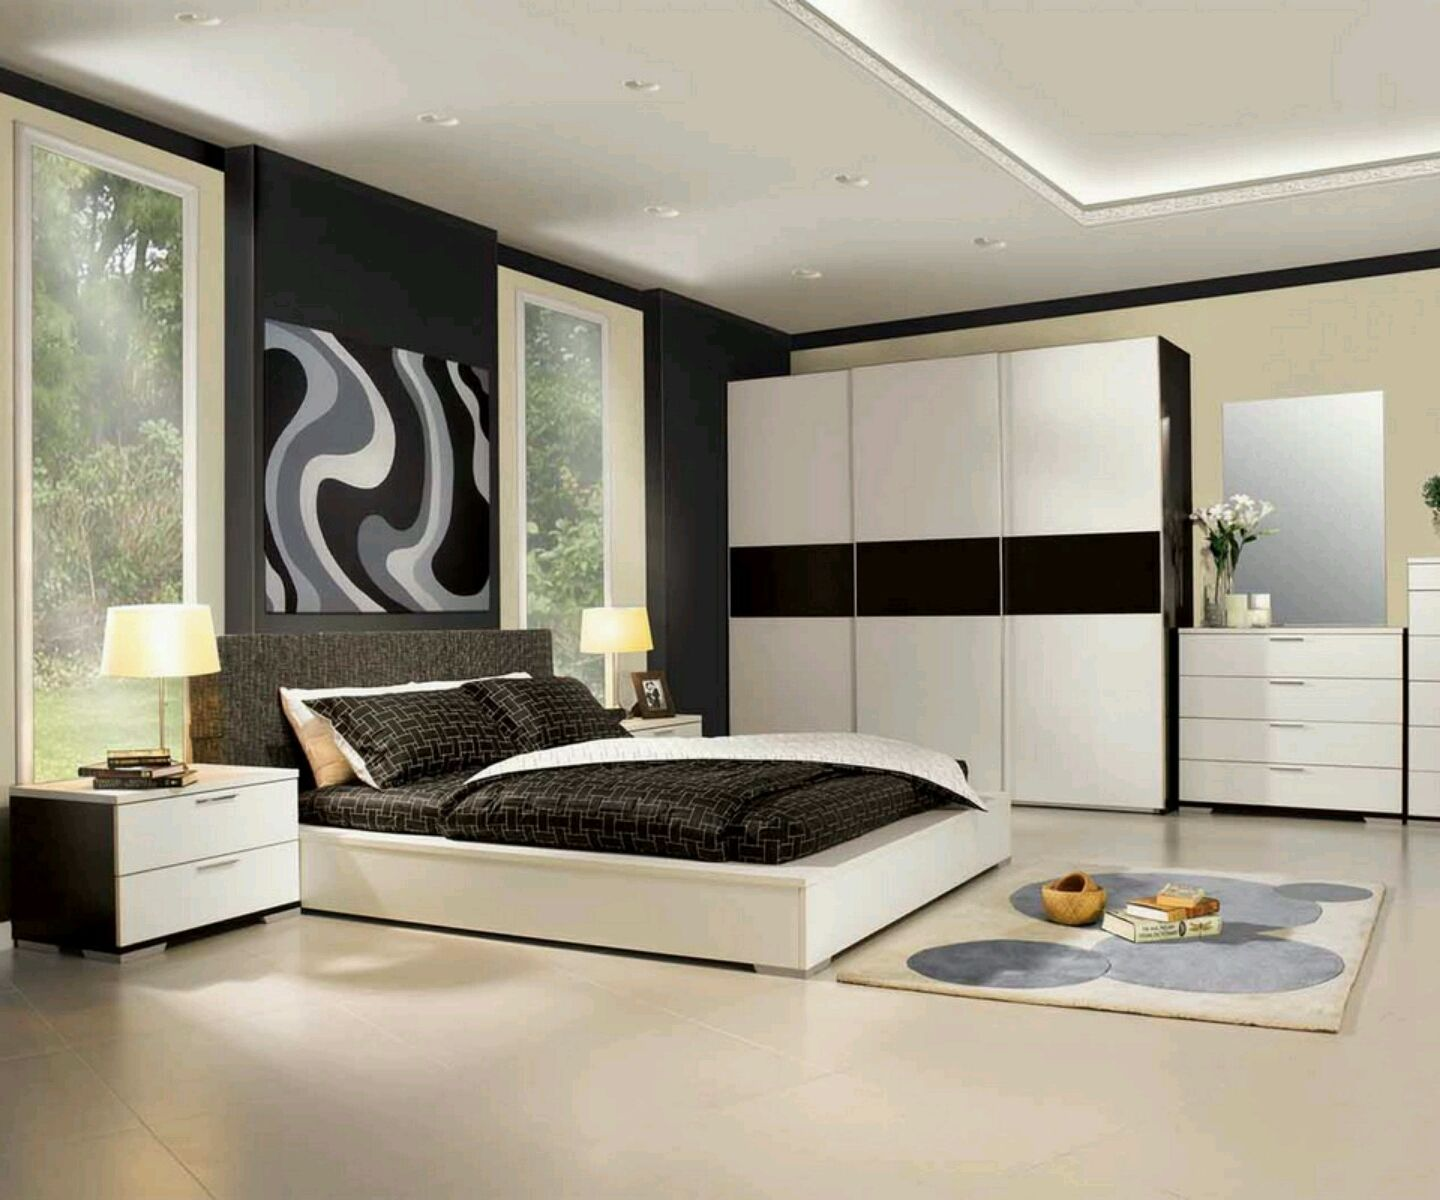 Modern Bedroom Furniture Design For more pictures and design ideas  please  visit my blog http. Modern Bedroom Furniture Design For more pictures and design ideas